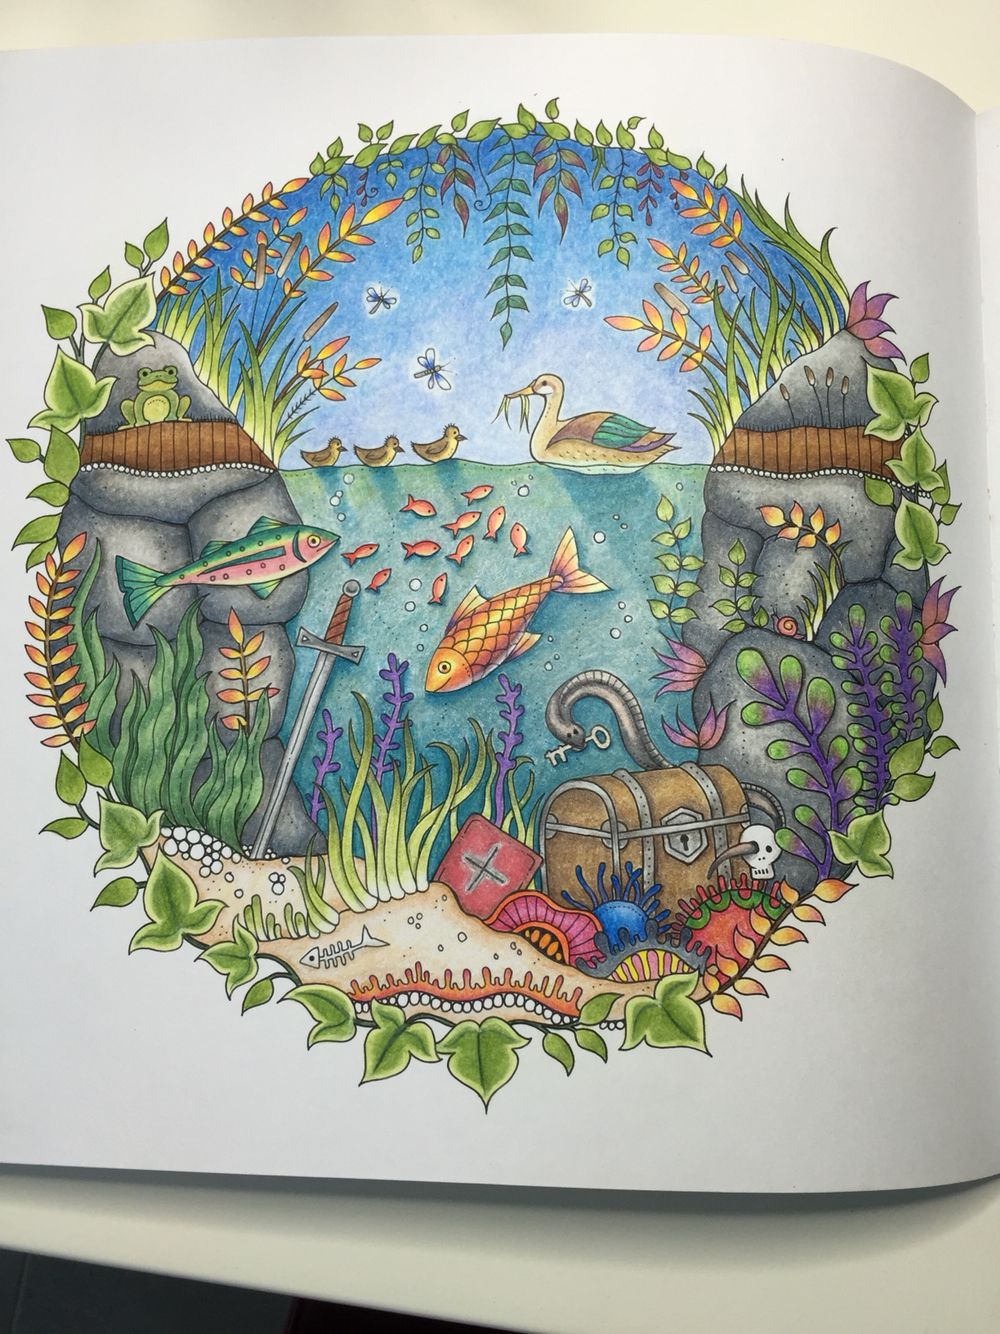 Colored By Marnie Nunes Johanna Basford Enchanted Forest Duck Pond I Colored Th Enchanted Forest Coloring Enchanted Forest Coloring Book Forest Coloring Book